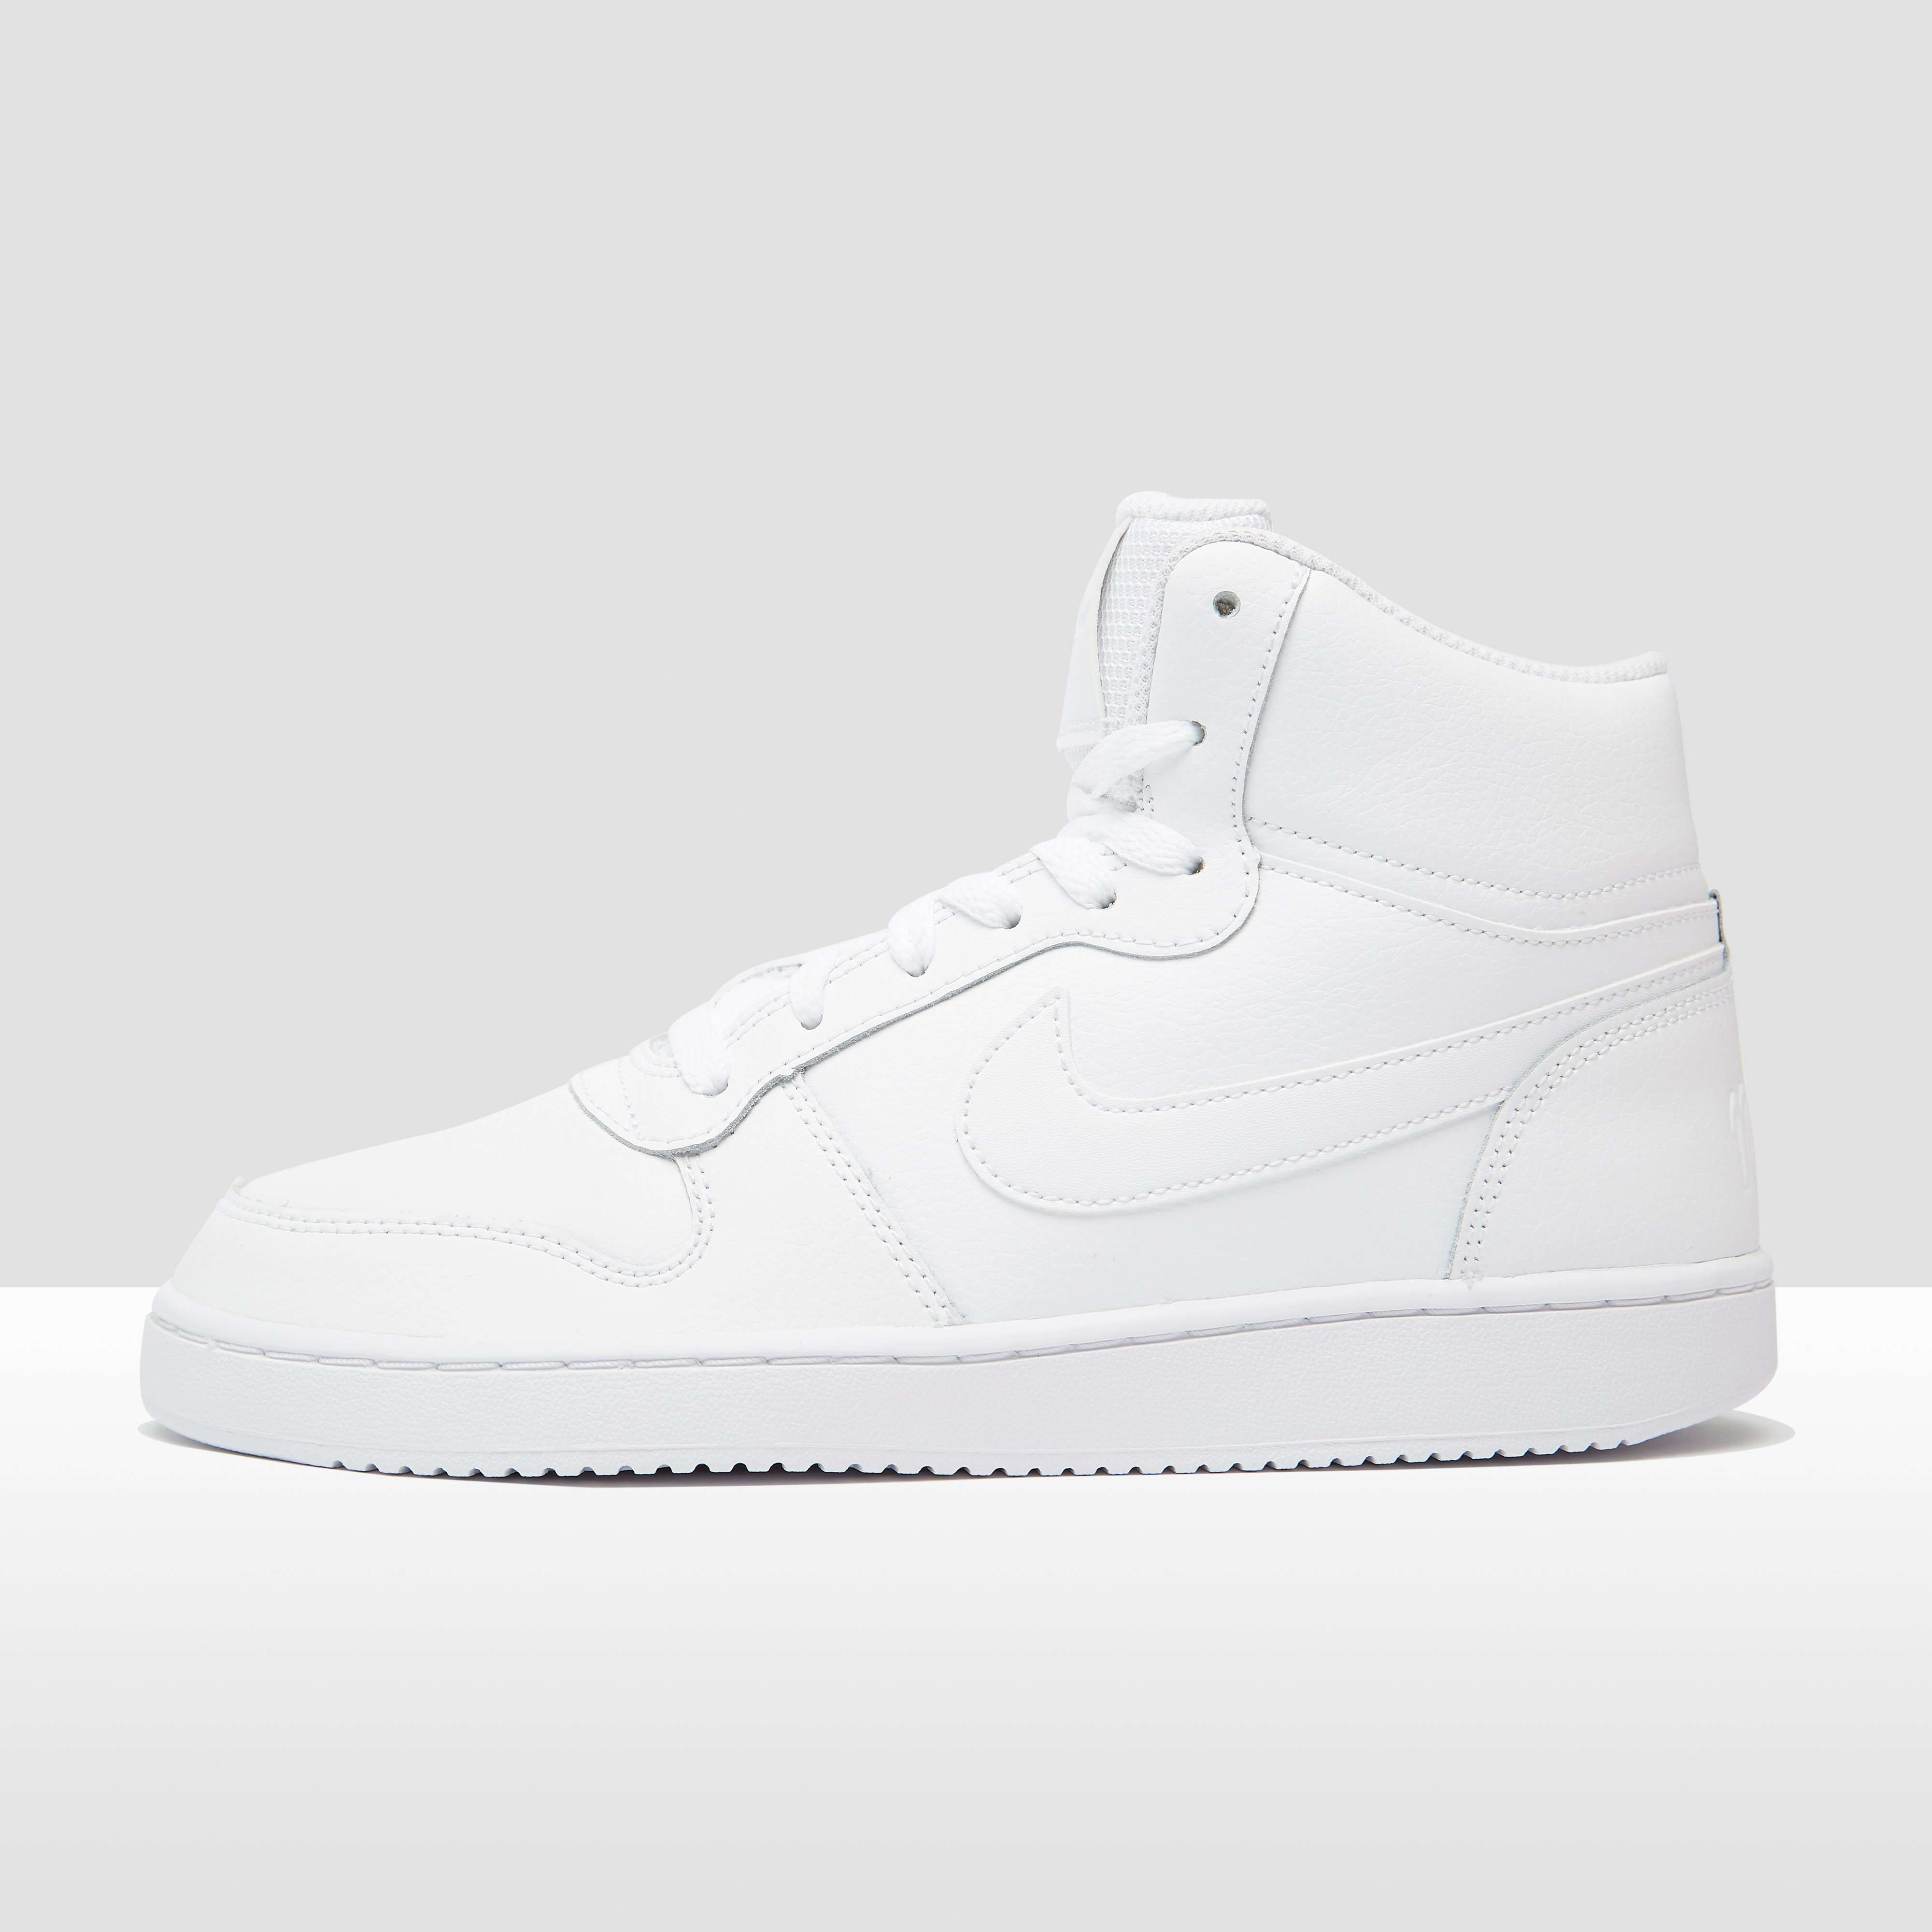 NIKE EBERNON MID SNEAKERS WIT DAMES | Sneaker, Nike, Outfits